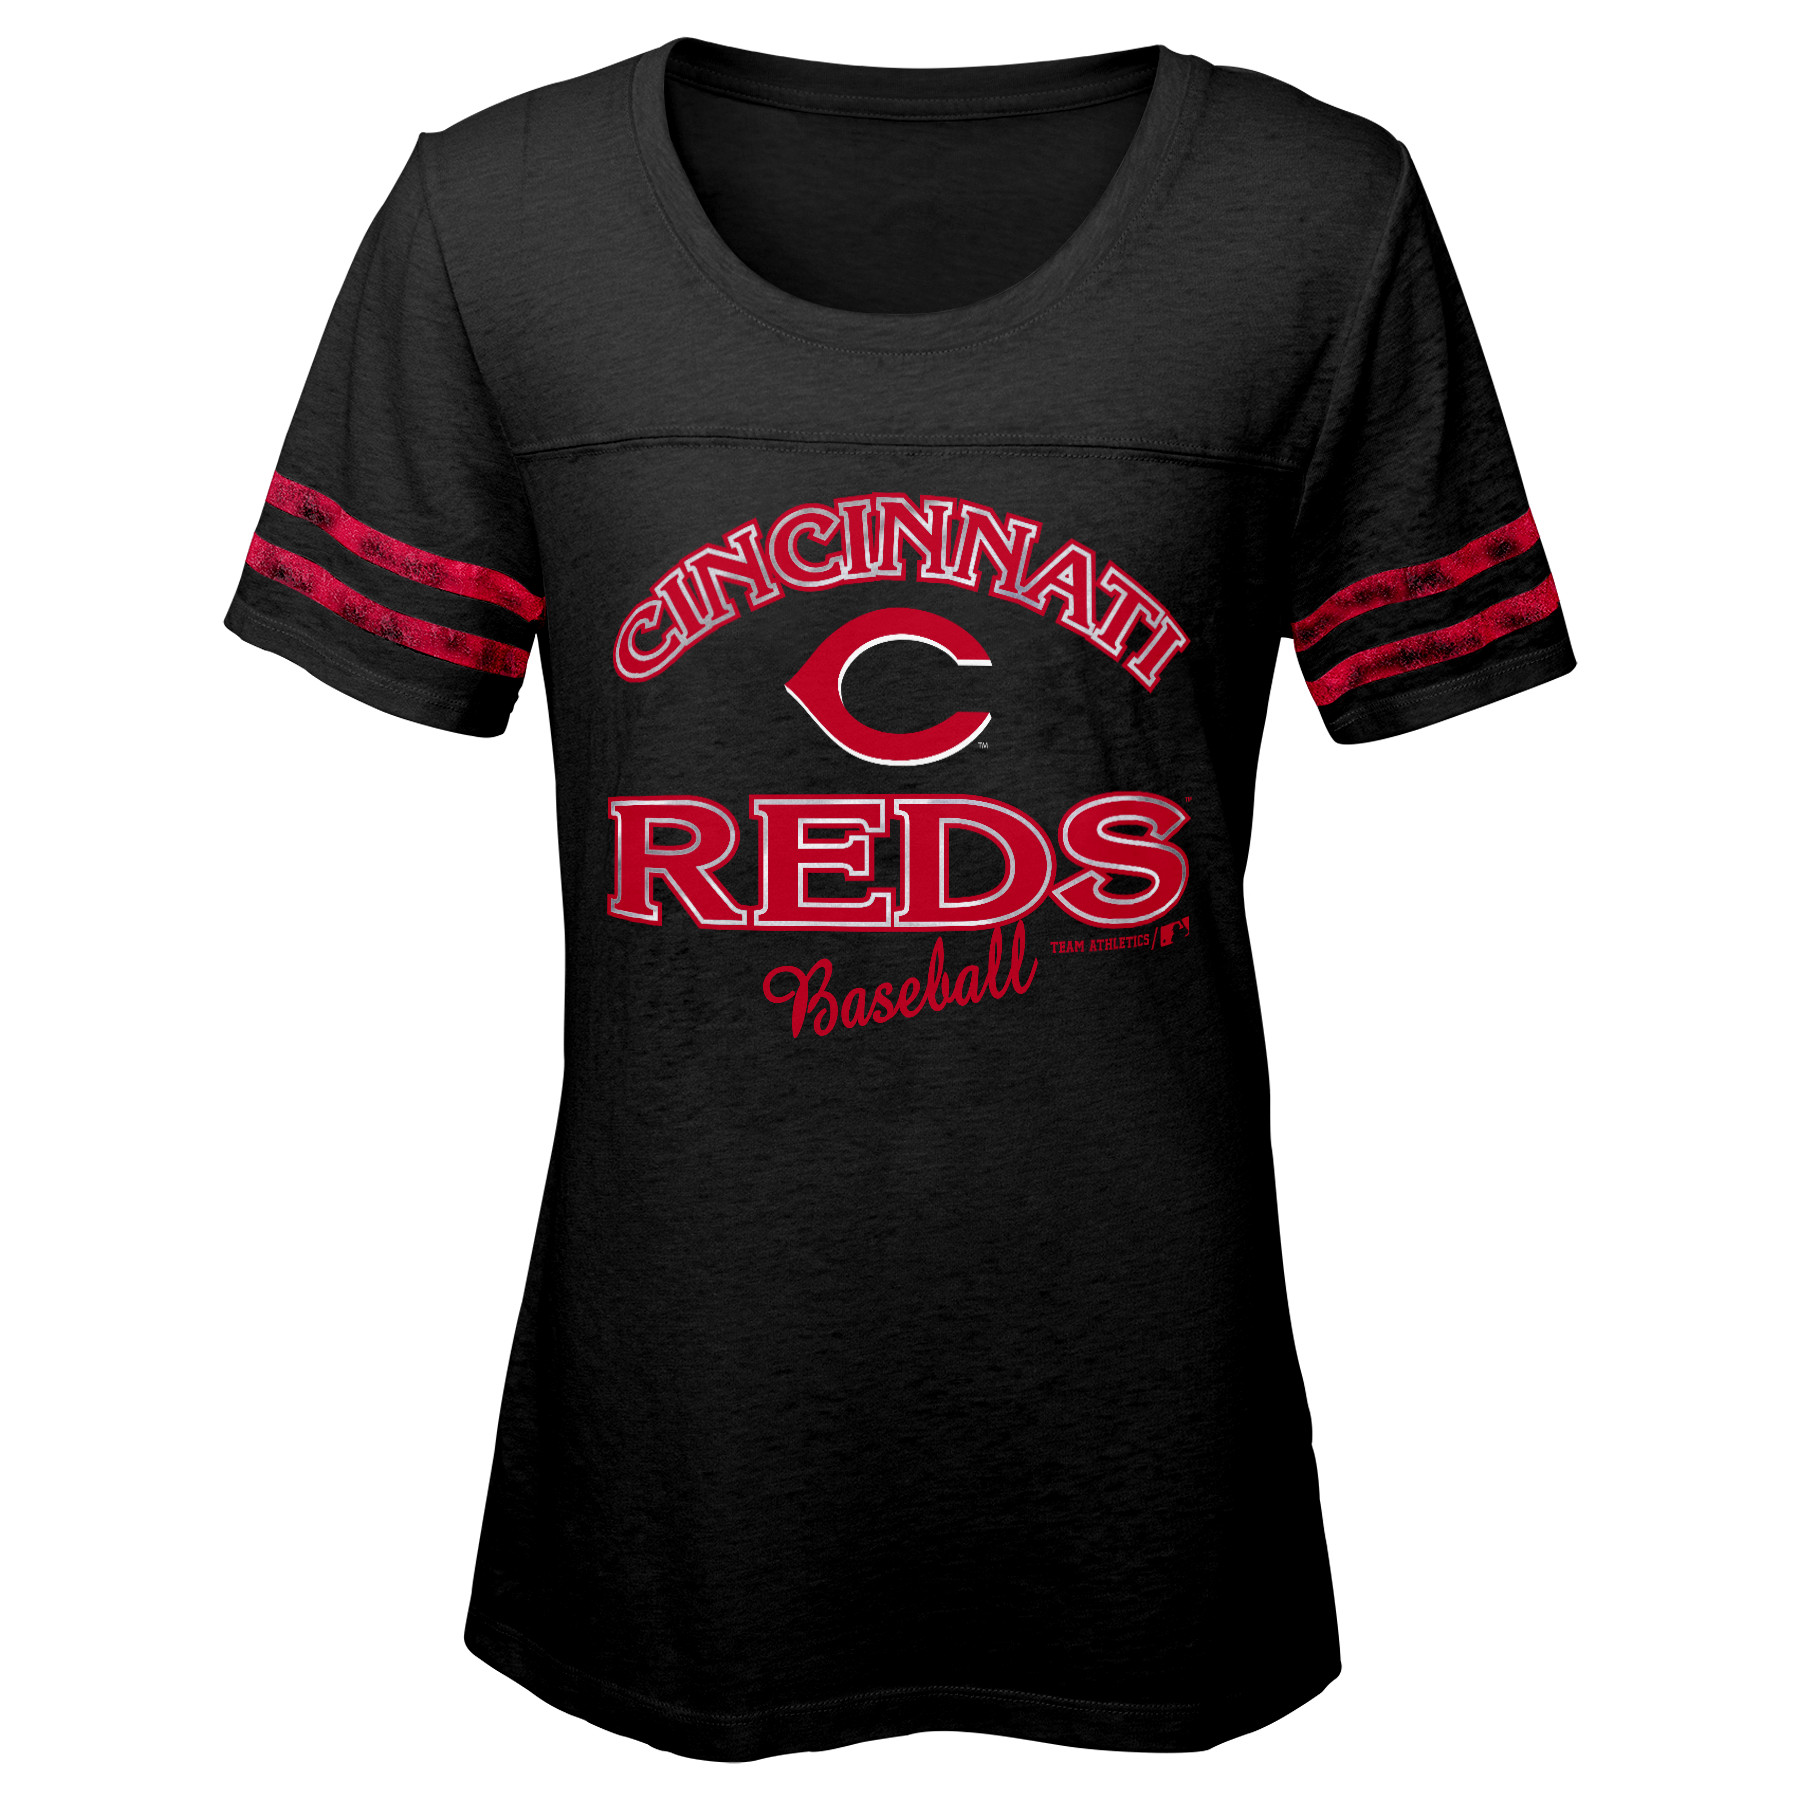 MLB Cincinnati REDS TEE Short Sleeve Girls Fashion 60% Cotton 40% Polyester Alternate Team Colors 7 - 16